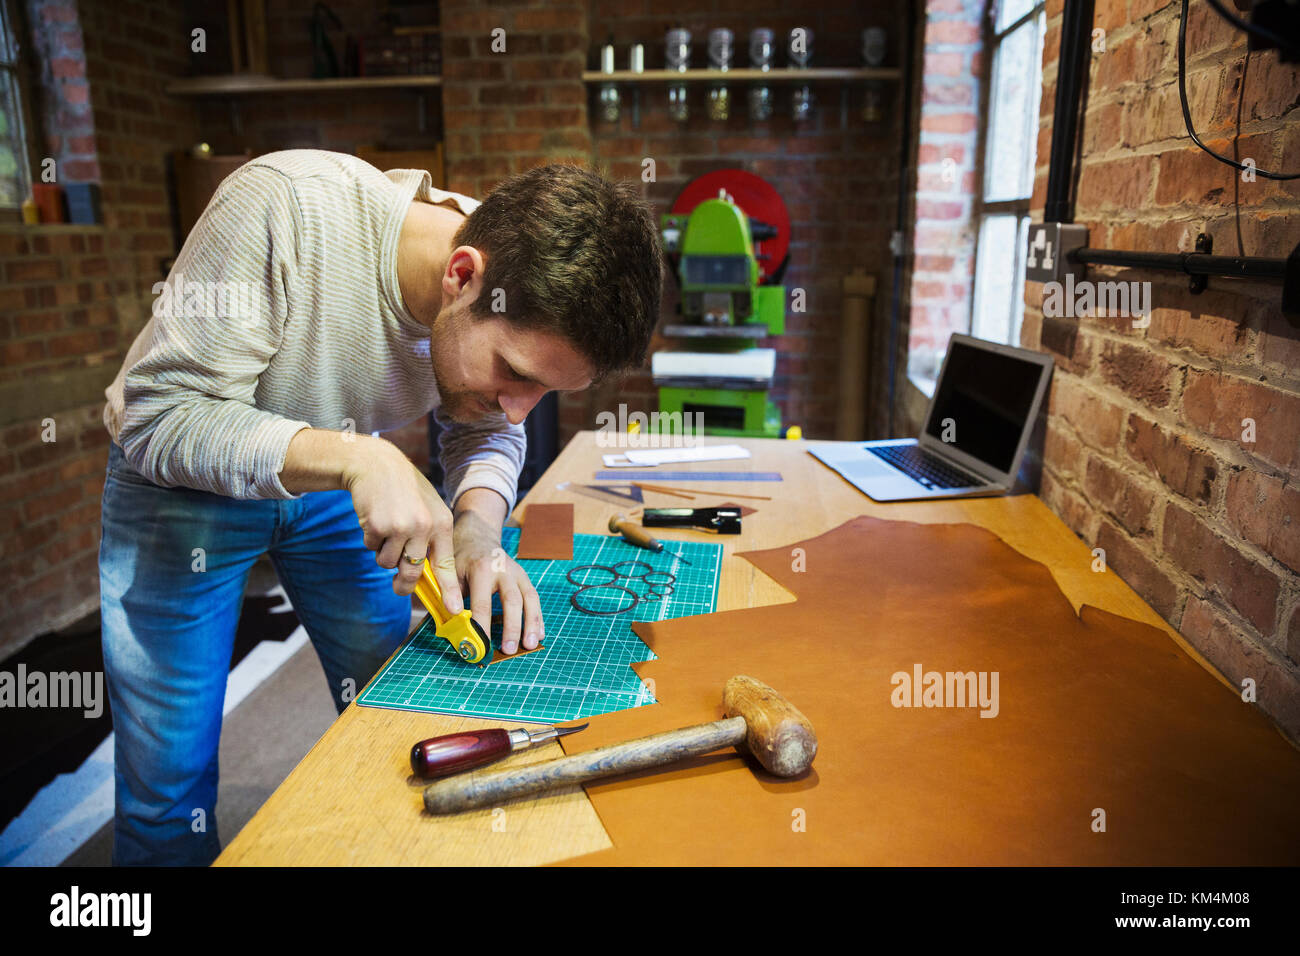 A craftsman using a rotary cutter wheel on a cutting mat on a small piece of brown leather. - Stock Image